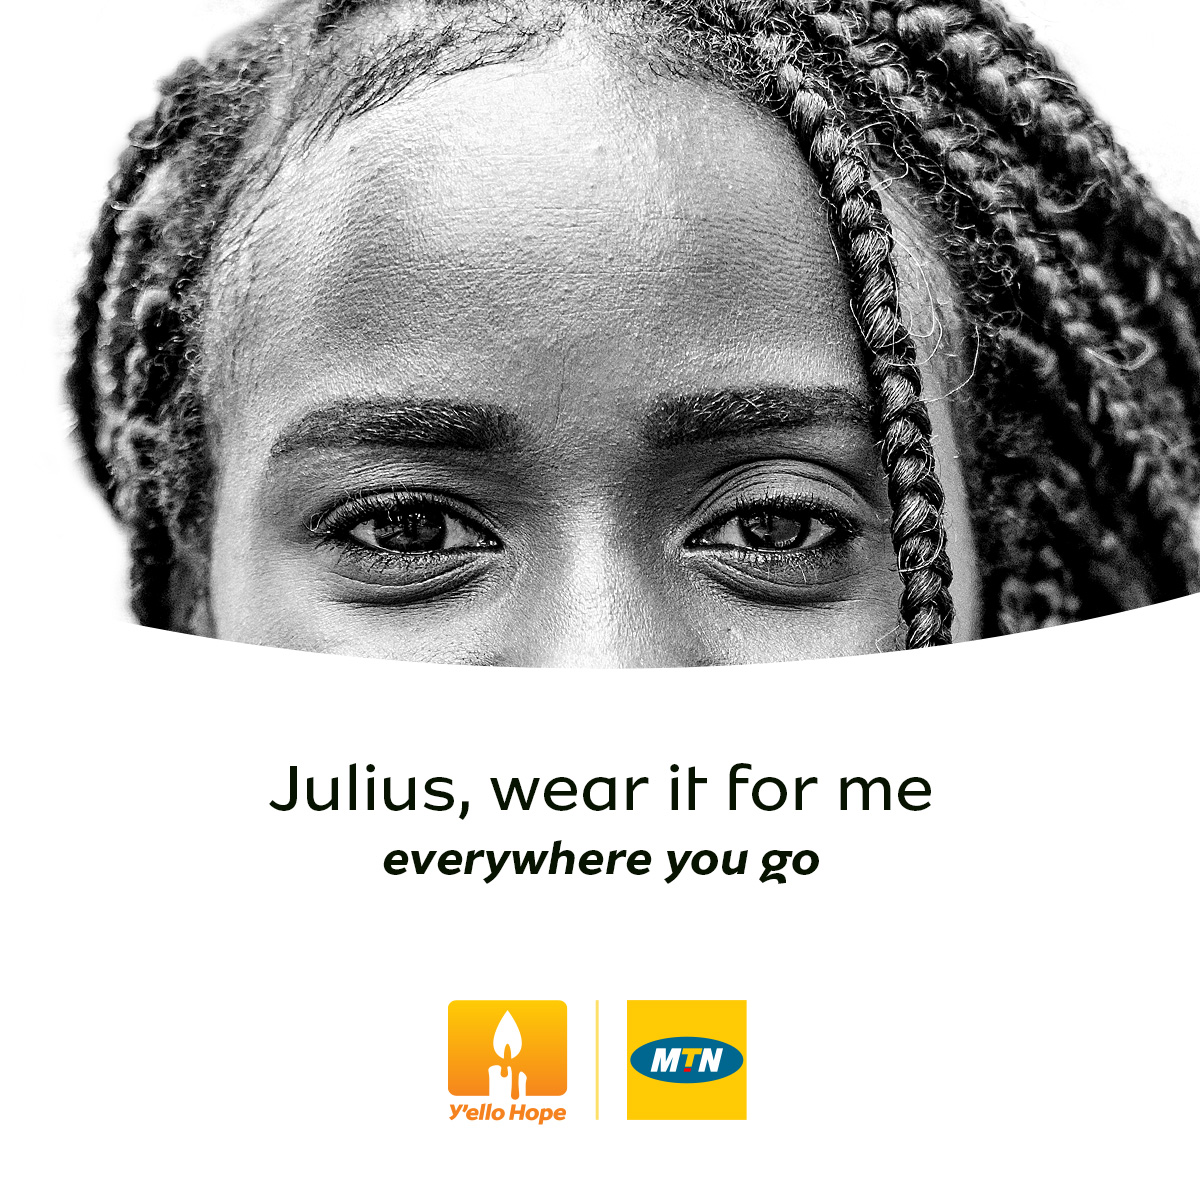 MTN rolls out 'WearItForMe' campaign across Africa to encourage wearing of face masks 1 MUGIBSON WRITES